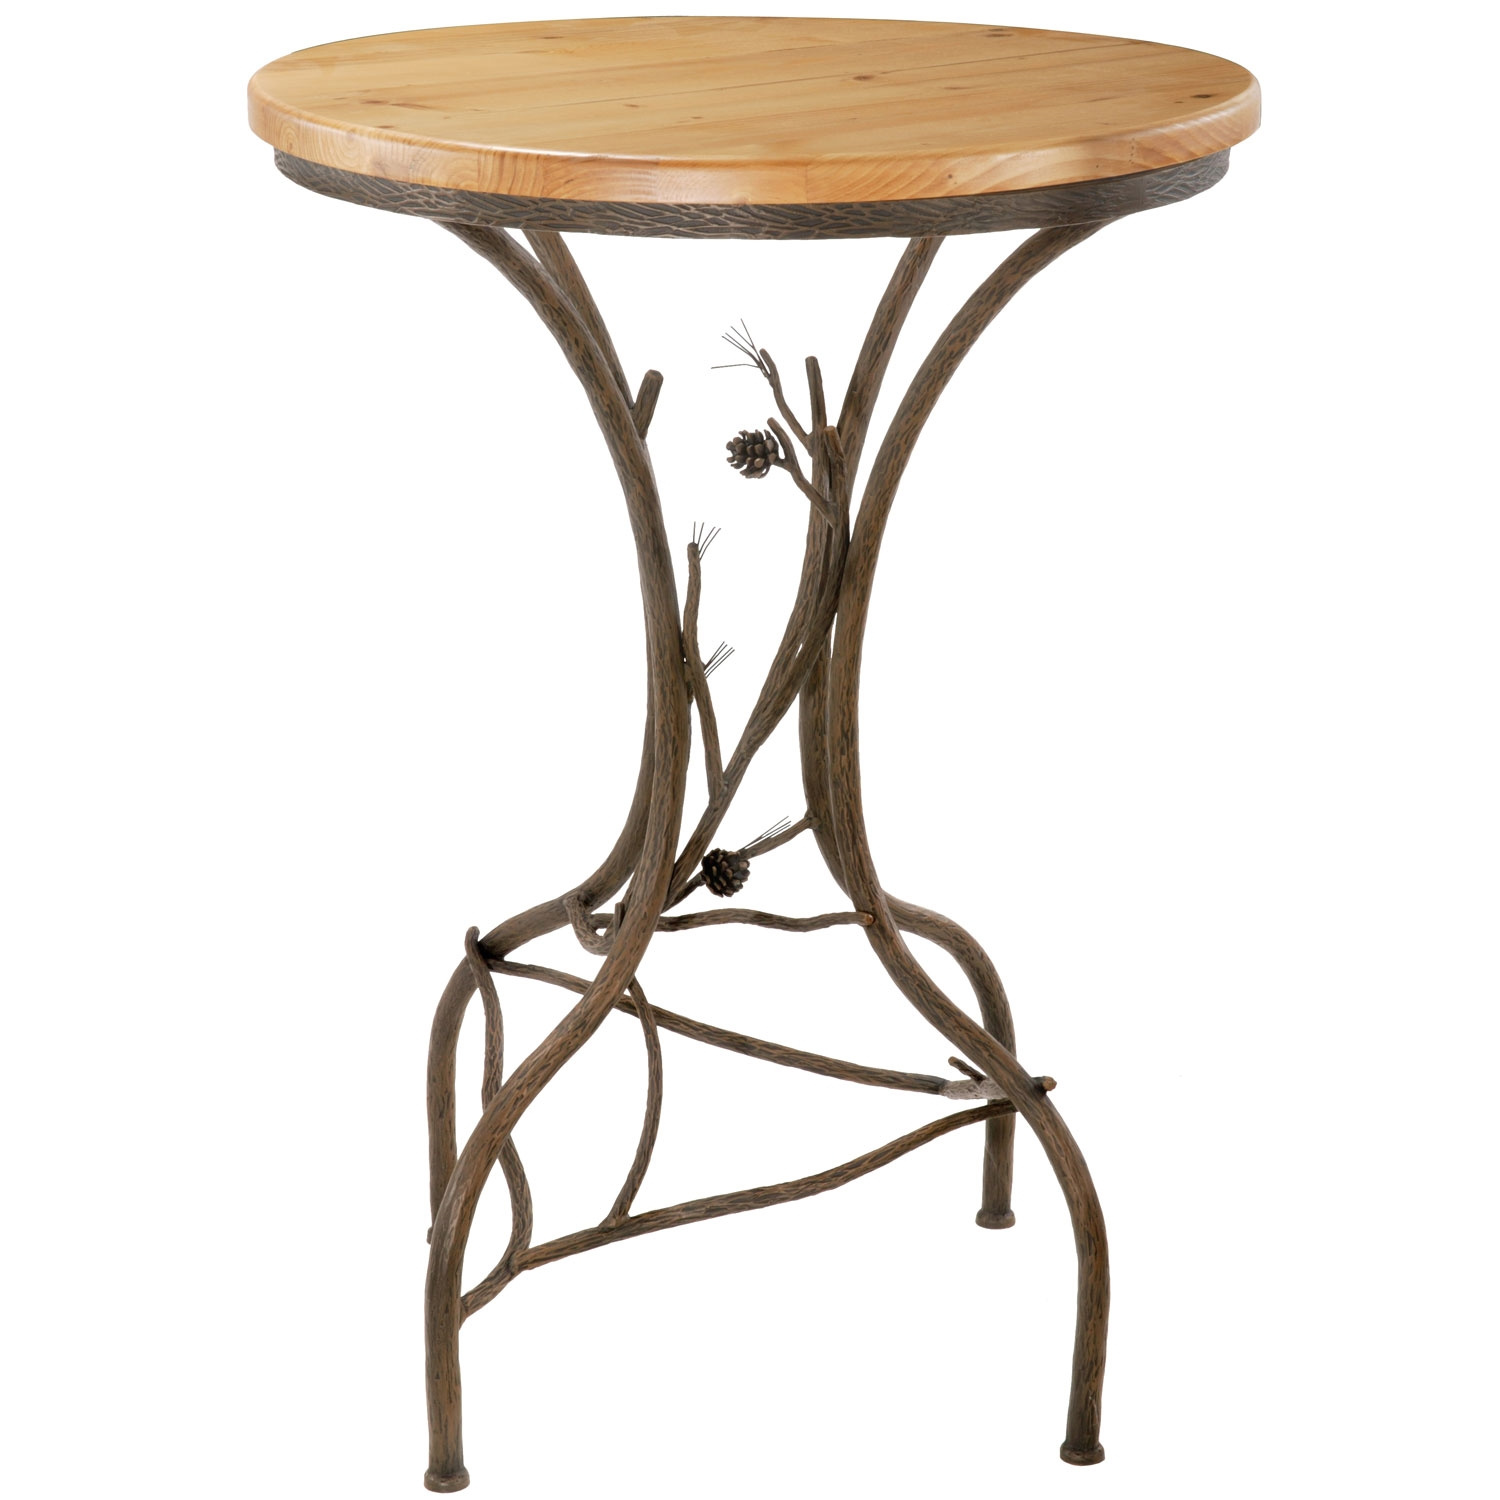 Rustic Pine Counter Height Table With In Round Top - Stone top counter height table